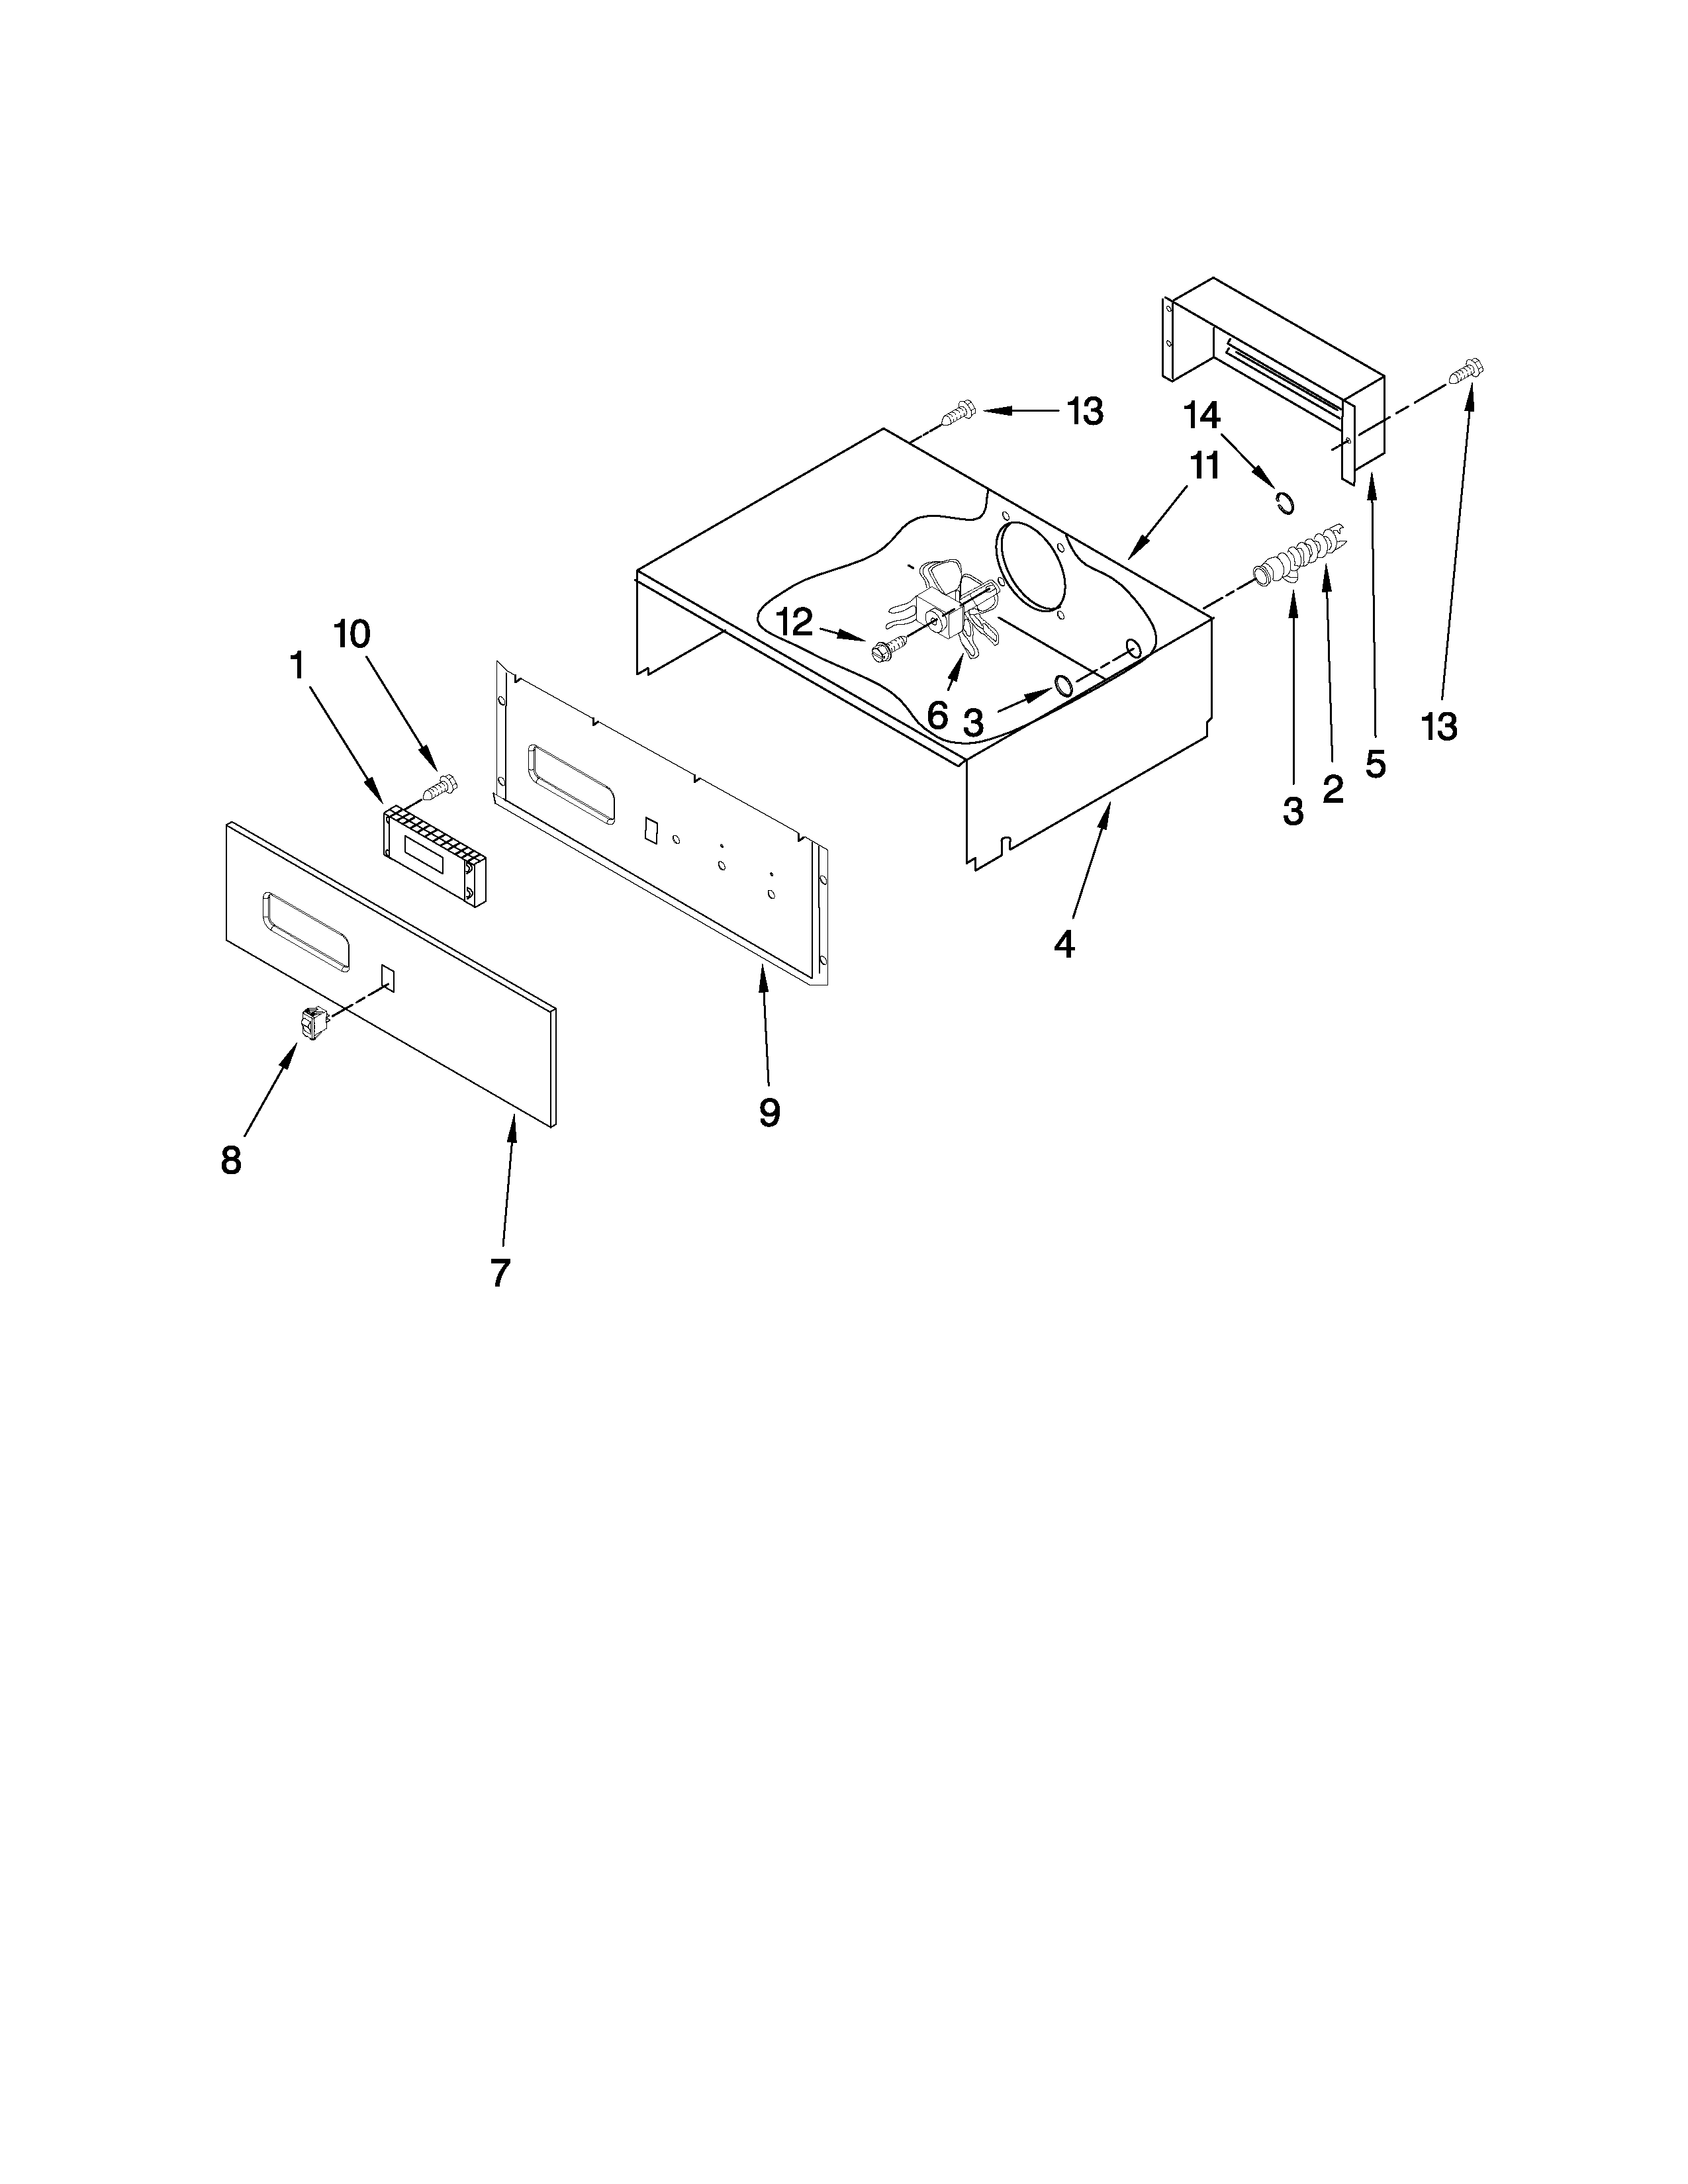 Maytag CWE4800ACE27 control panel parts diagram